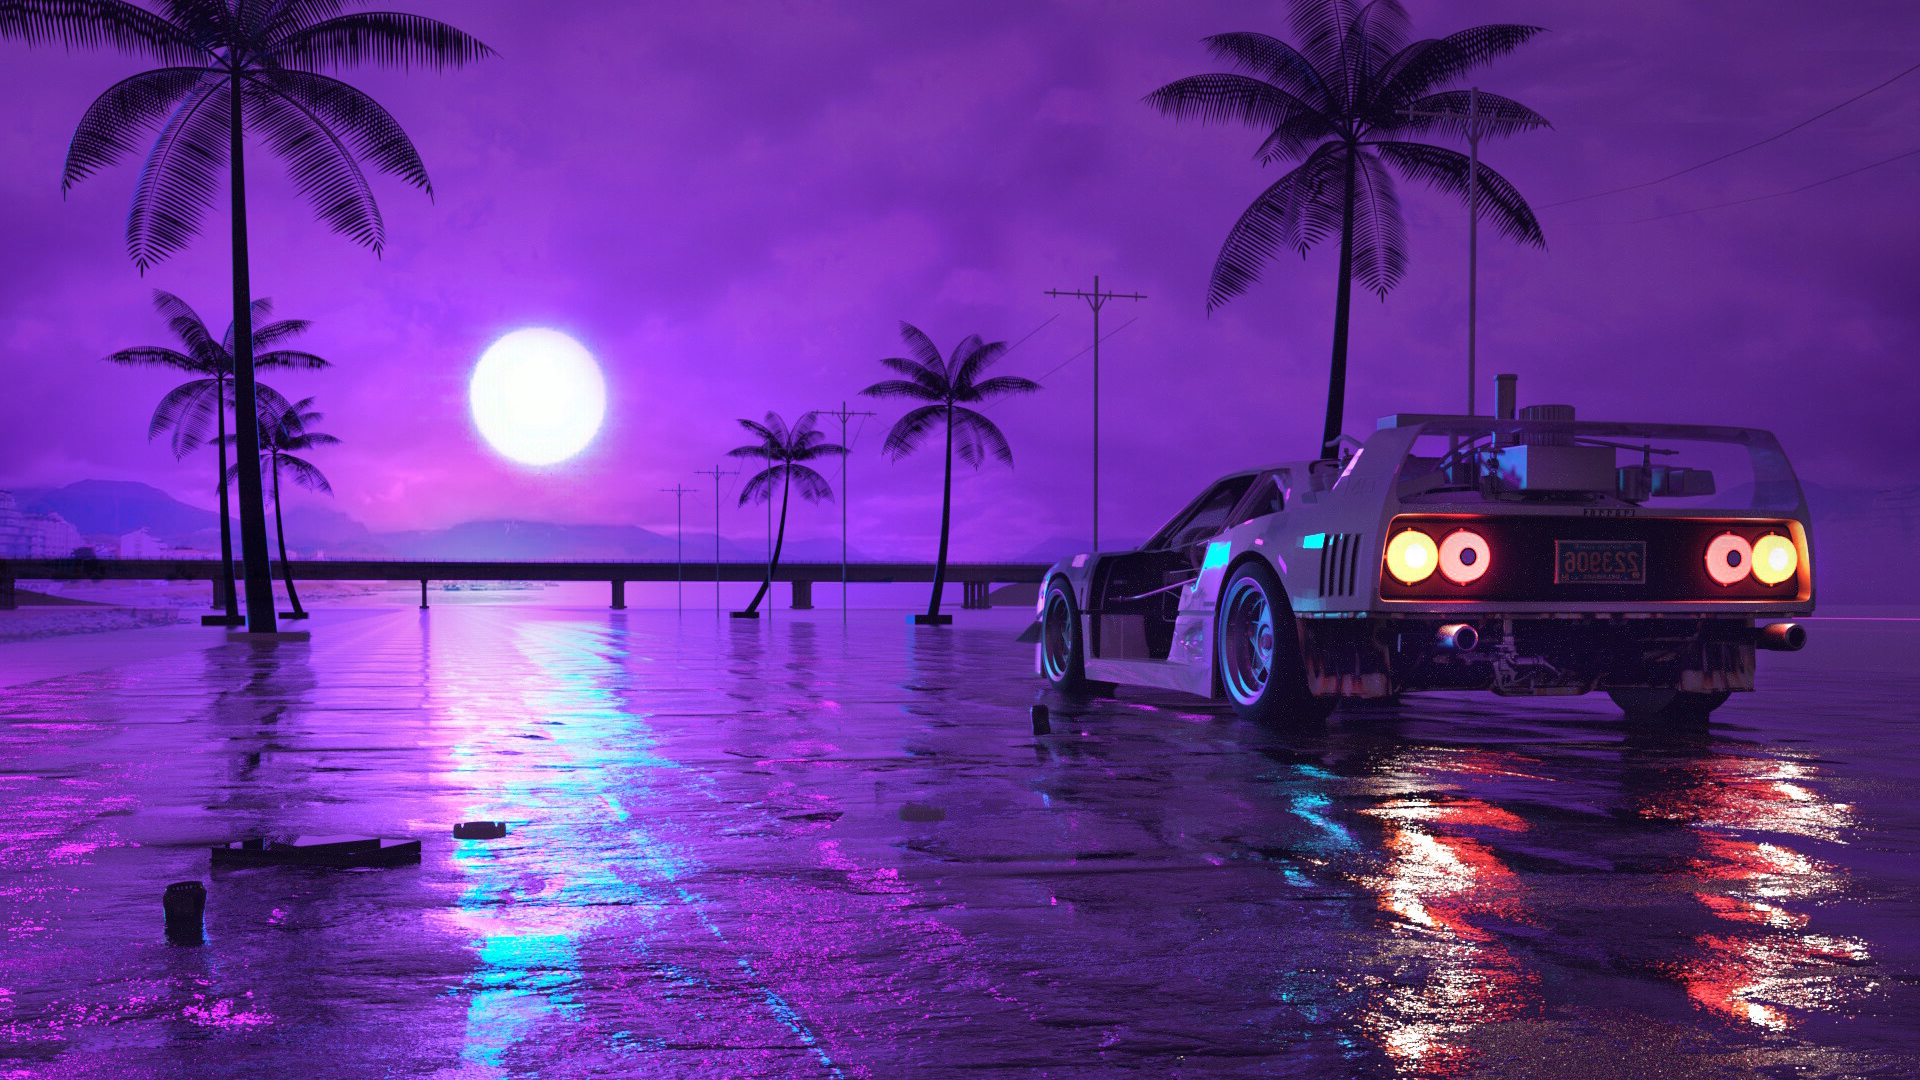 RETRO WAVE CAR PURPLE NIGHT MOON WALLPAPER 1080p